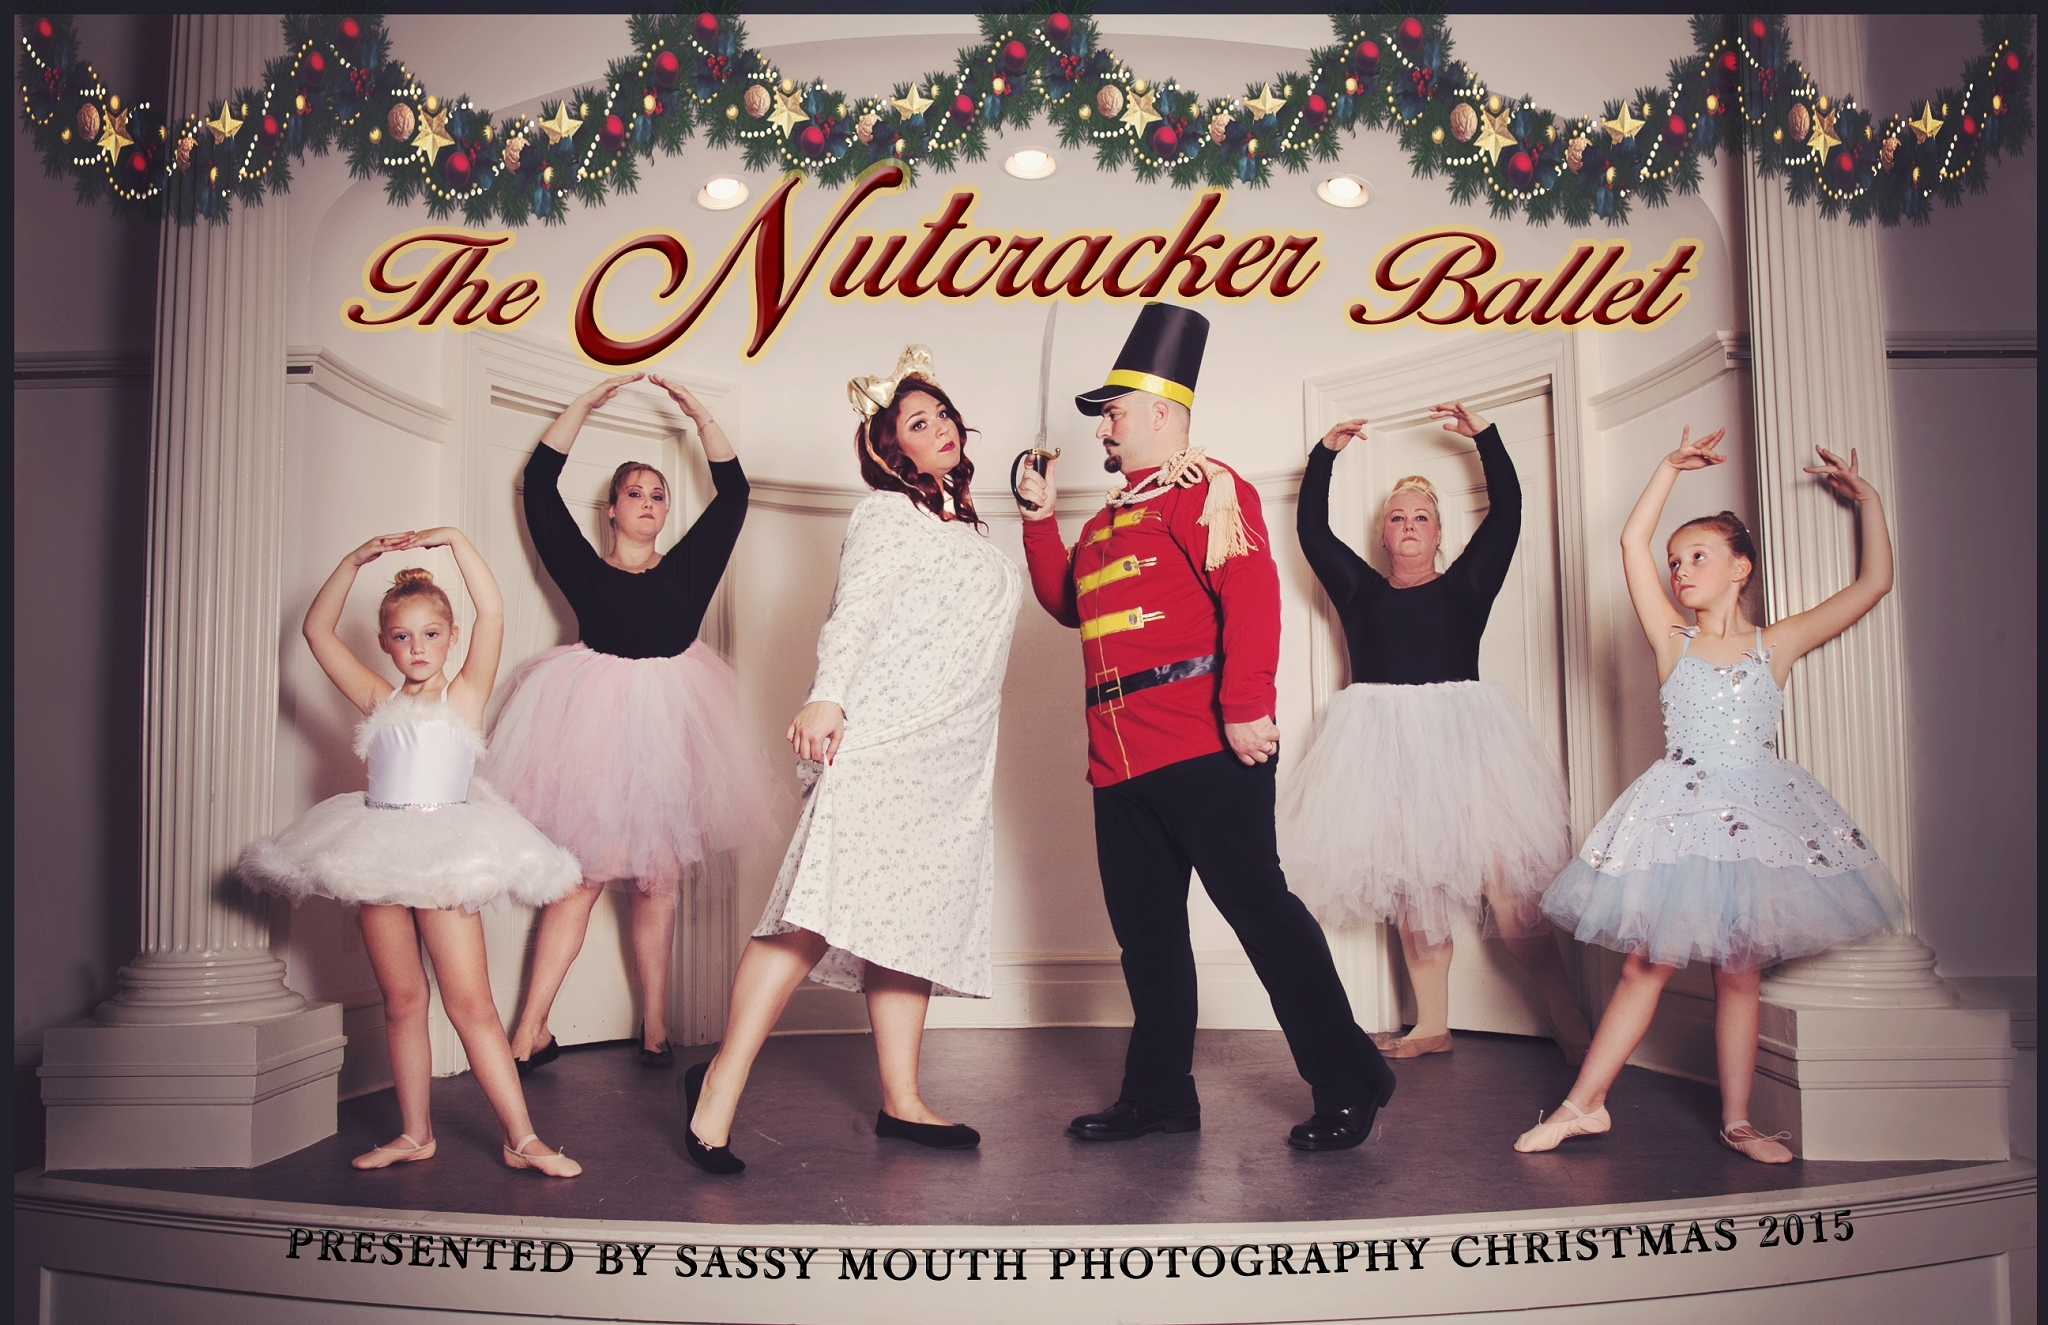 CT Portrait Photography – Christmas Card 2015 The Nutcracker Ballet ...